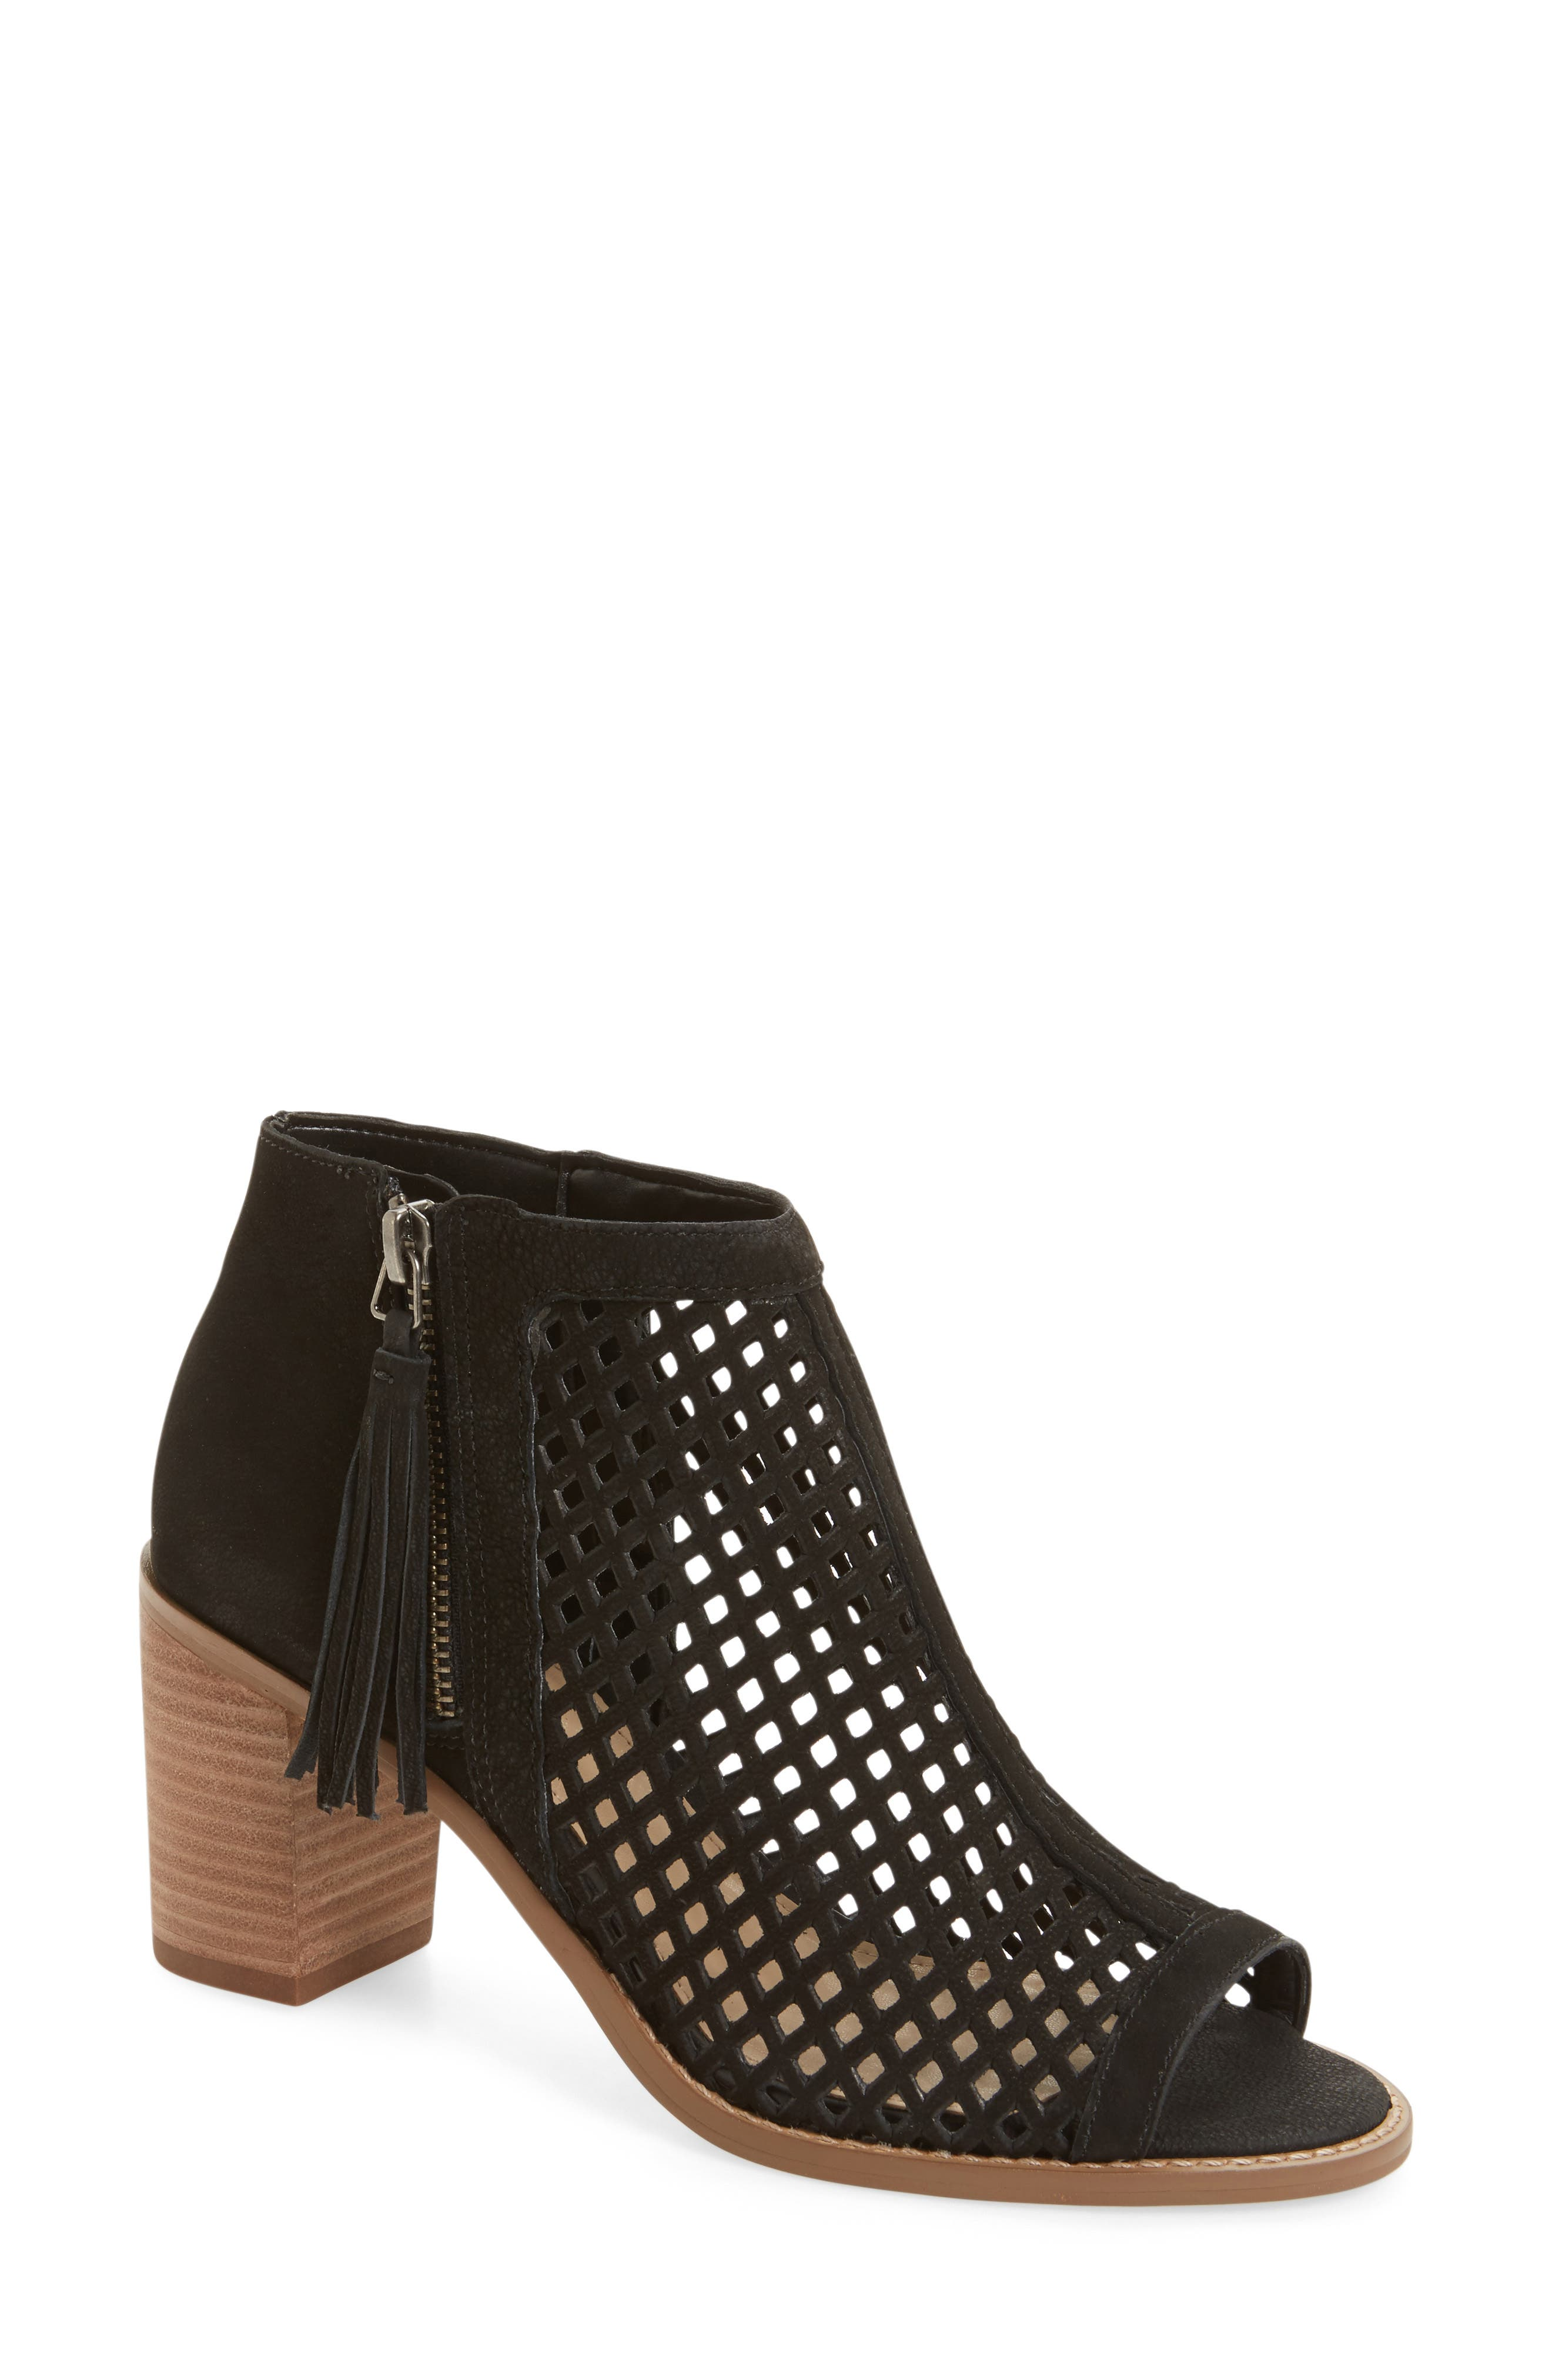 Main Image - Vince Camuto Tresin Perforated Open-Toe Bootie (Women)